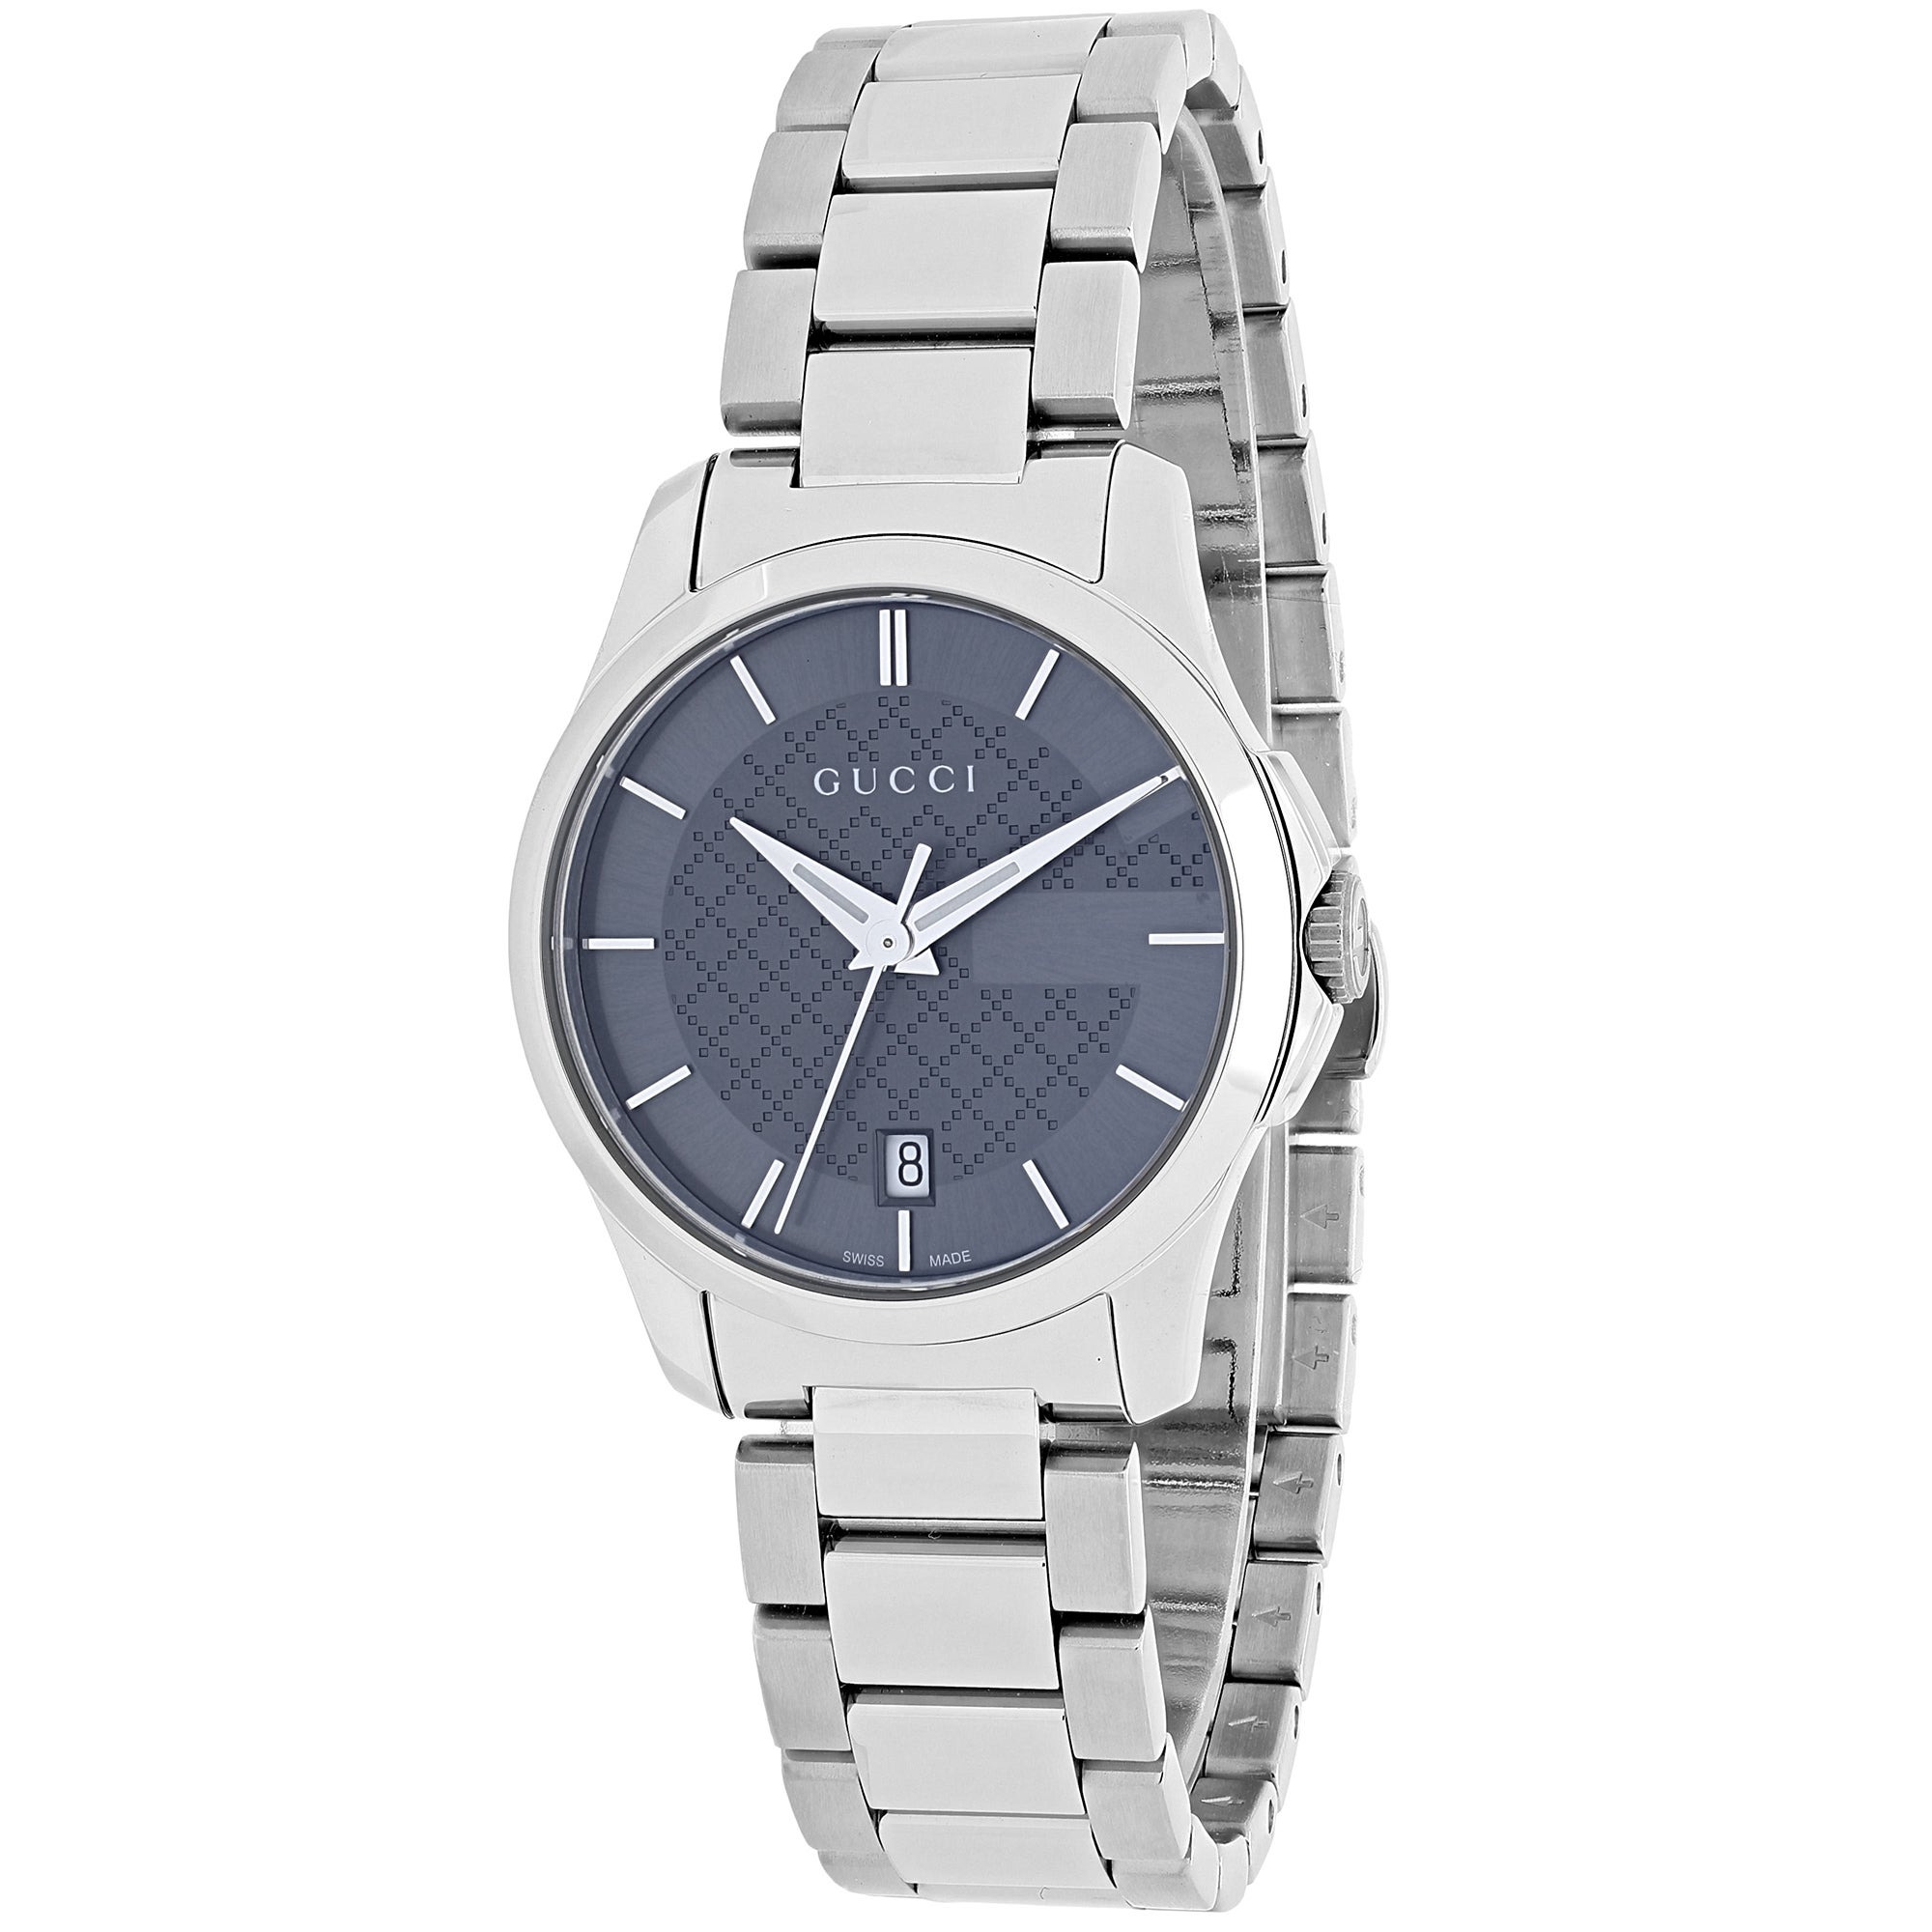 Gucci Women's YA126522 'Timeless' Grey Dial Stainless Ste...